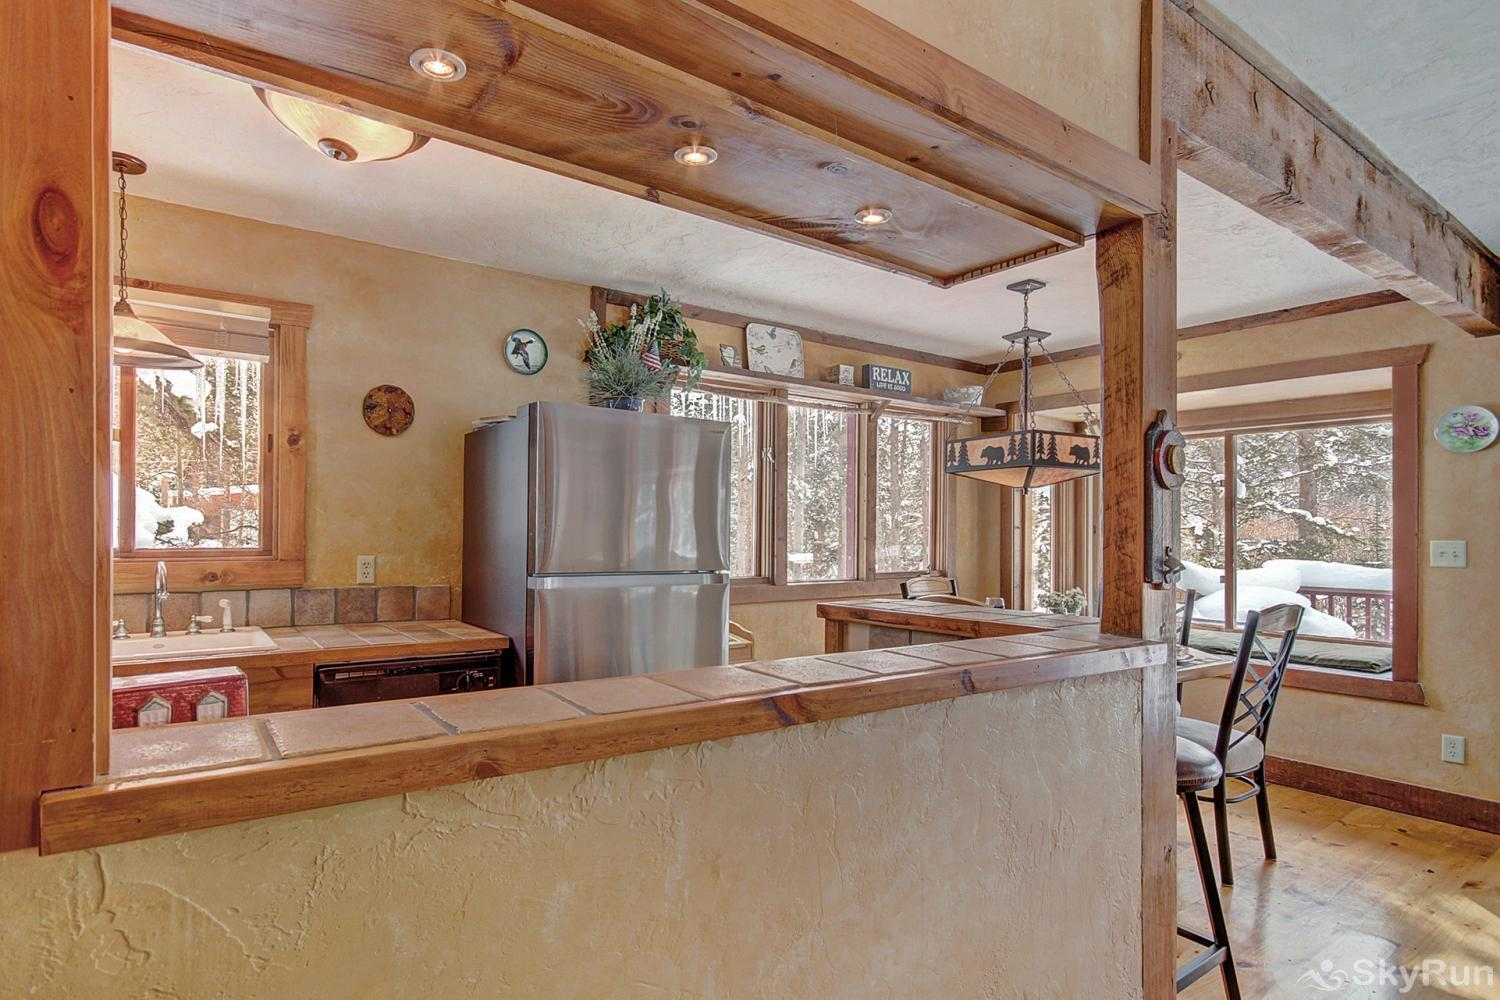 Whispering Pines View of kitchen and dining area